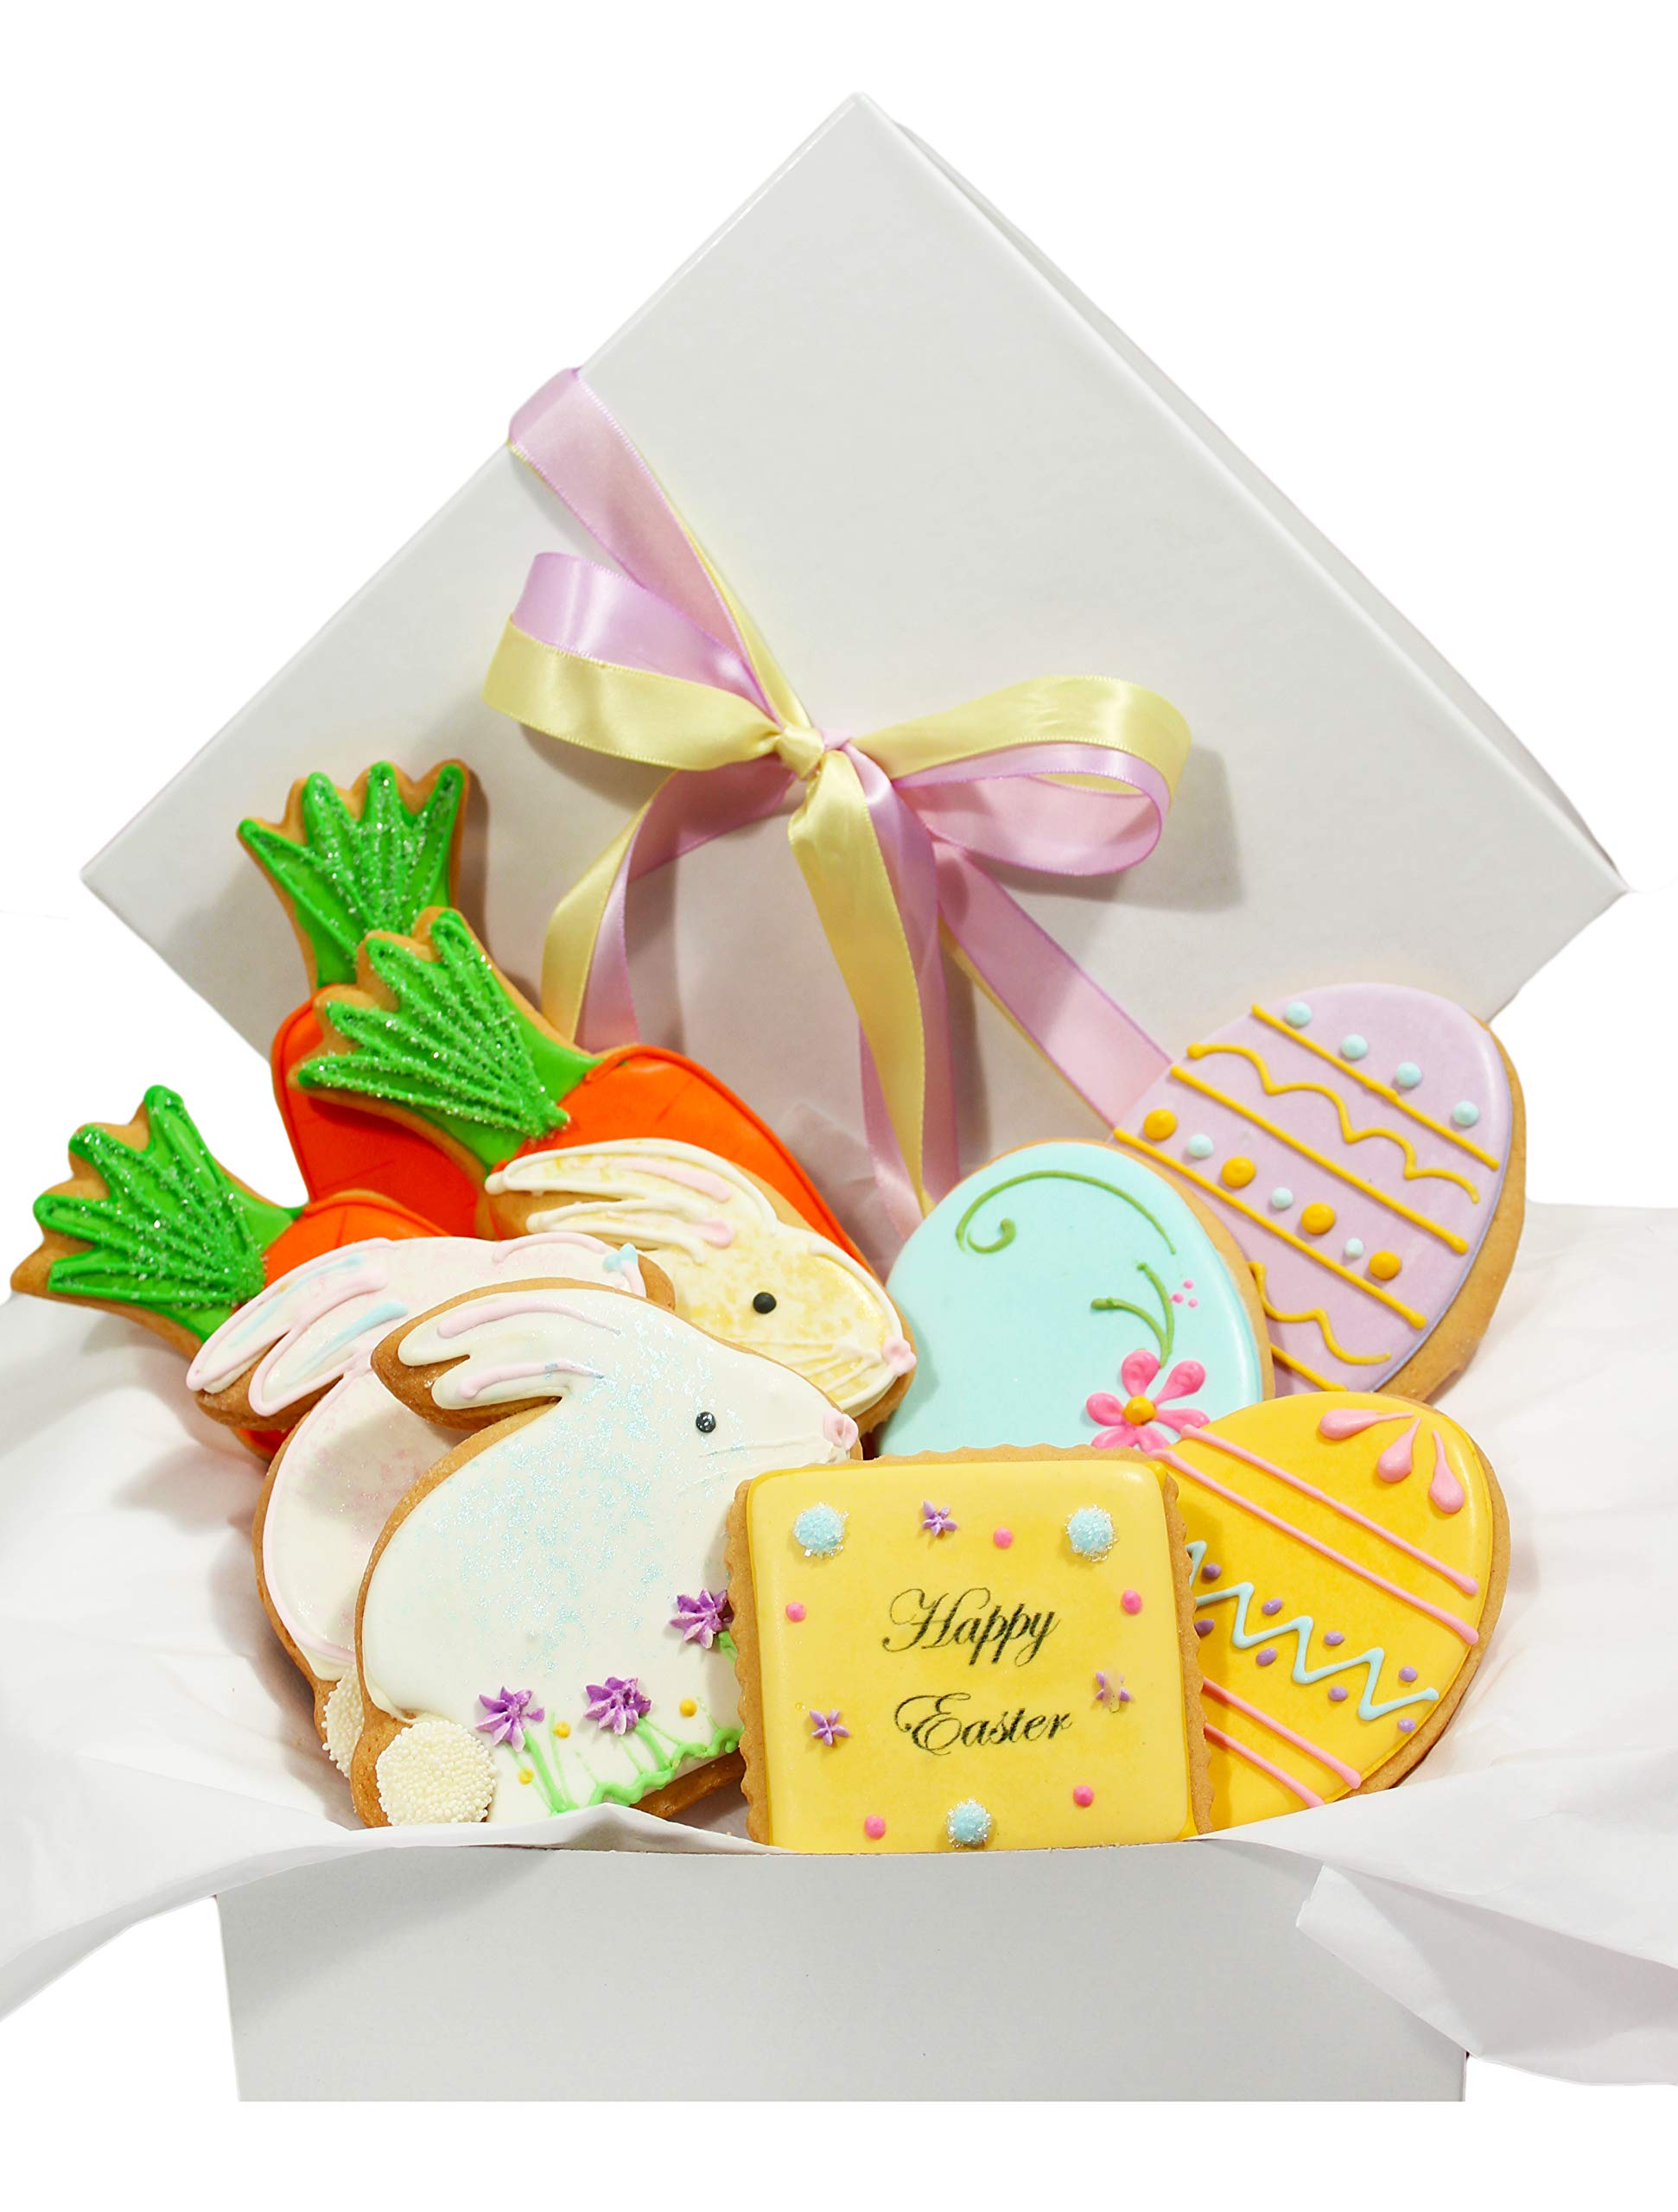 Easter Day Cookie Gift Basket 10 Pastel Decorated Cookies Bunny Eggs Carrots for Men Women Boys Girls Boyfriend Girlfriend Prime Delivery